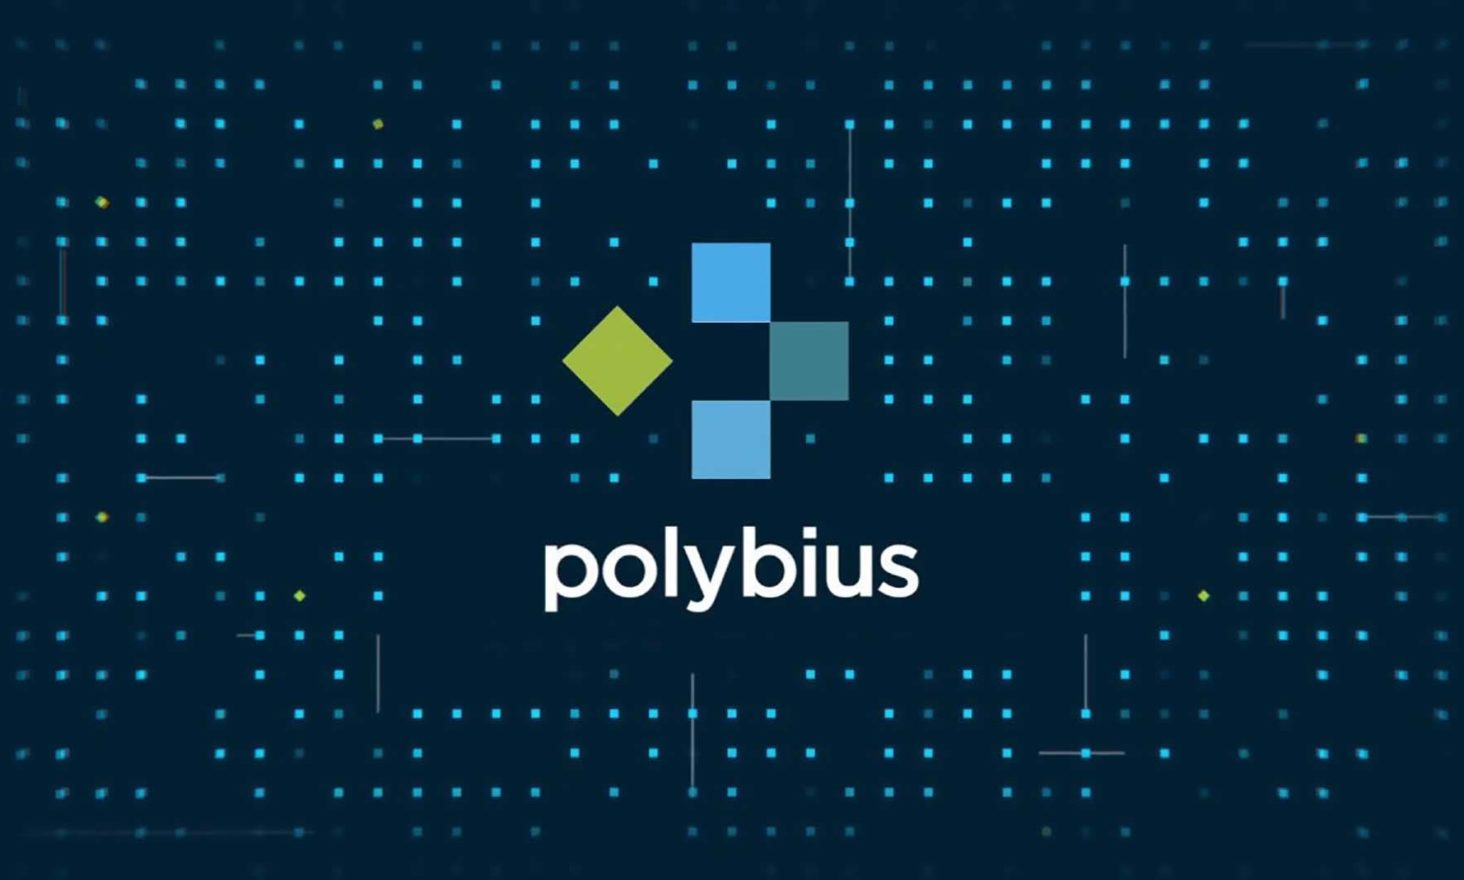 Polybius Project ICO raises $19 Million, Becomes Eligible for EU Banking License